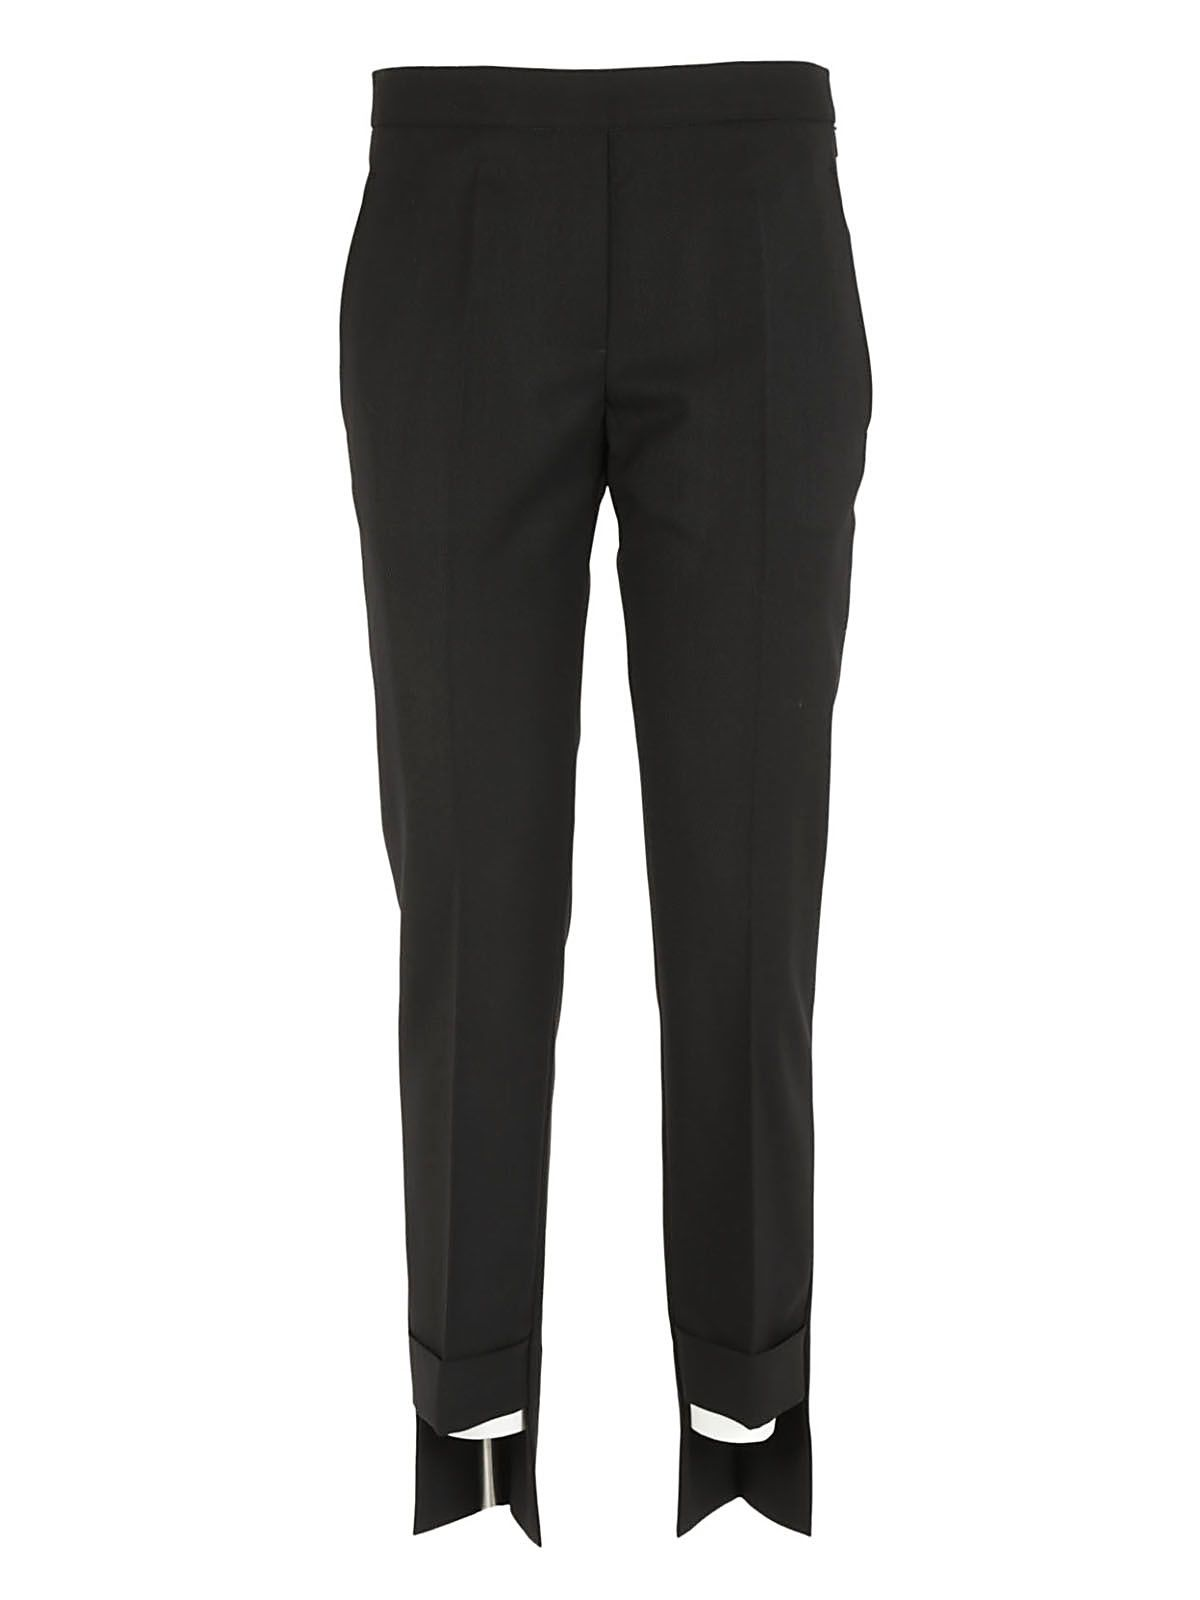 Neil Barrett Slim Fit Trousers